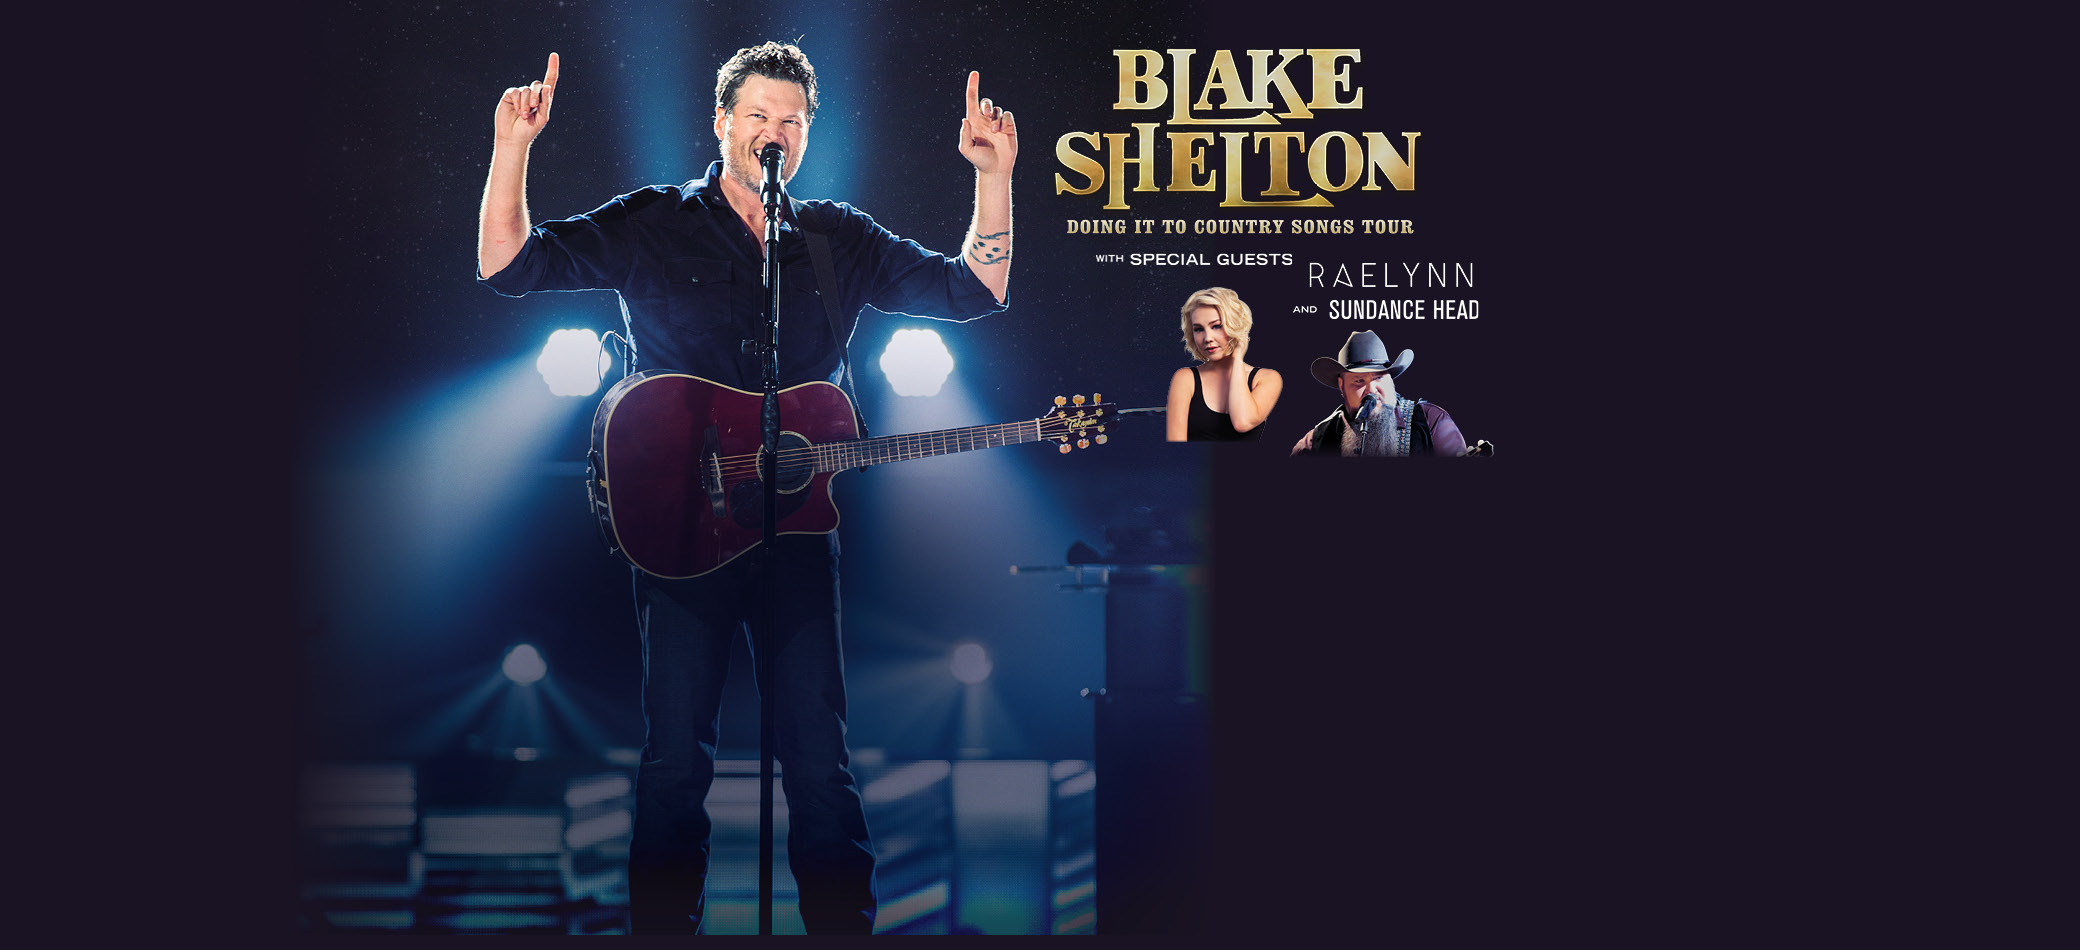 Blake shelton vip experiences blake shelton doing it to country songs tour 2017 kristyandbryce Image collections